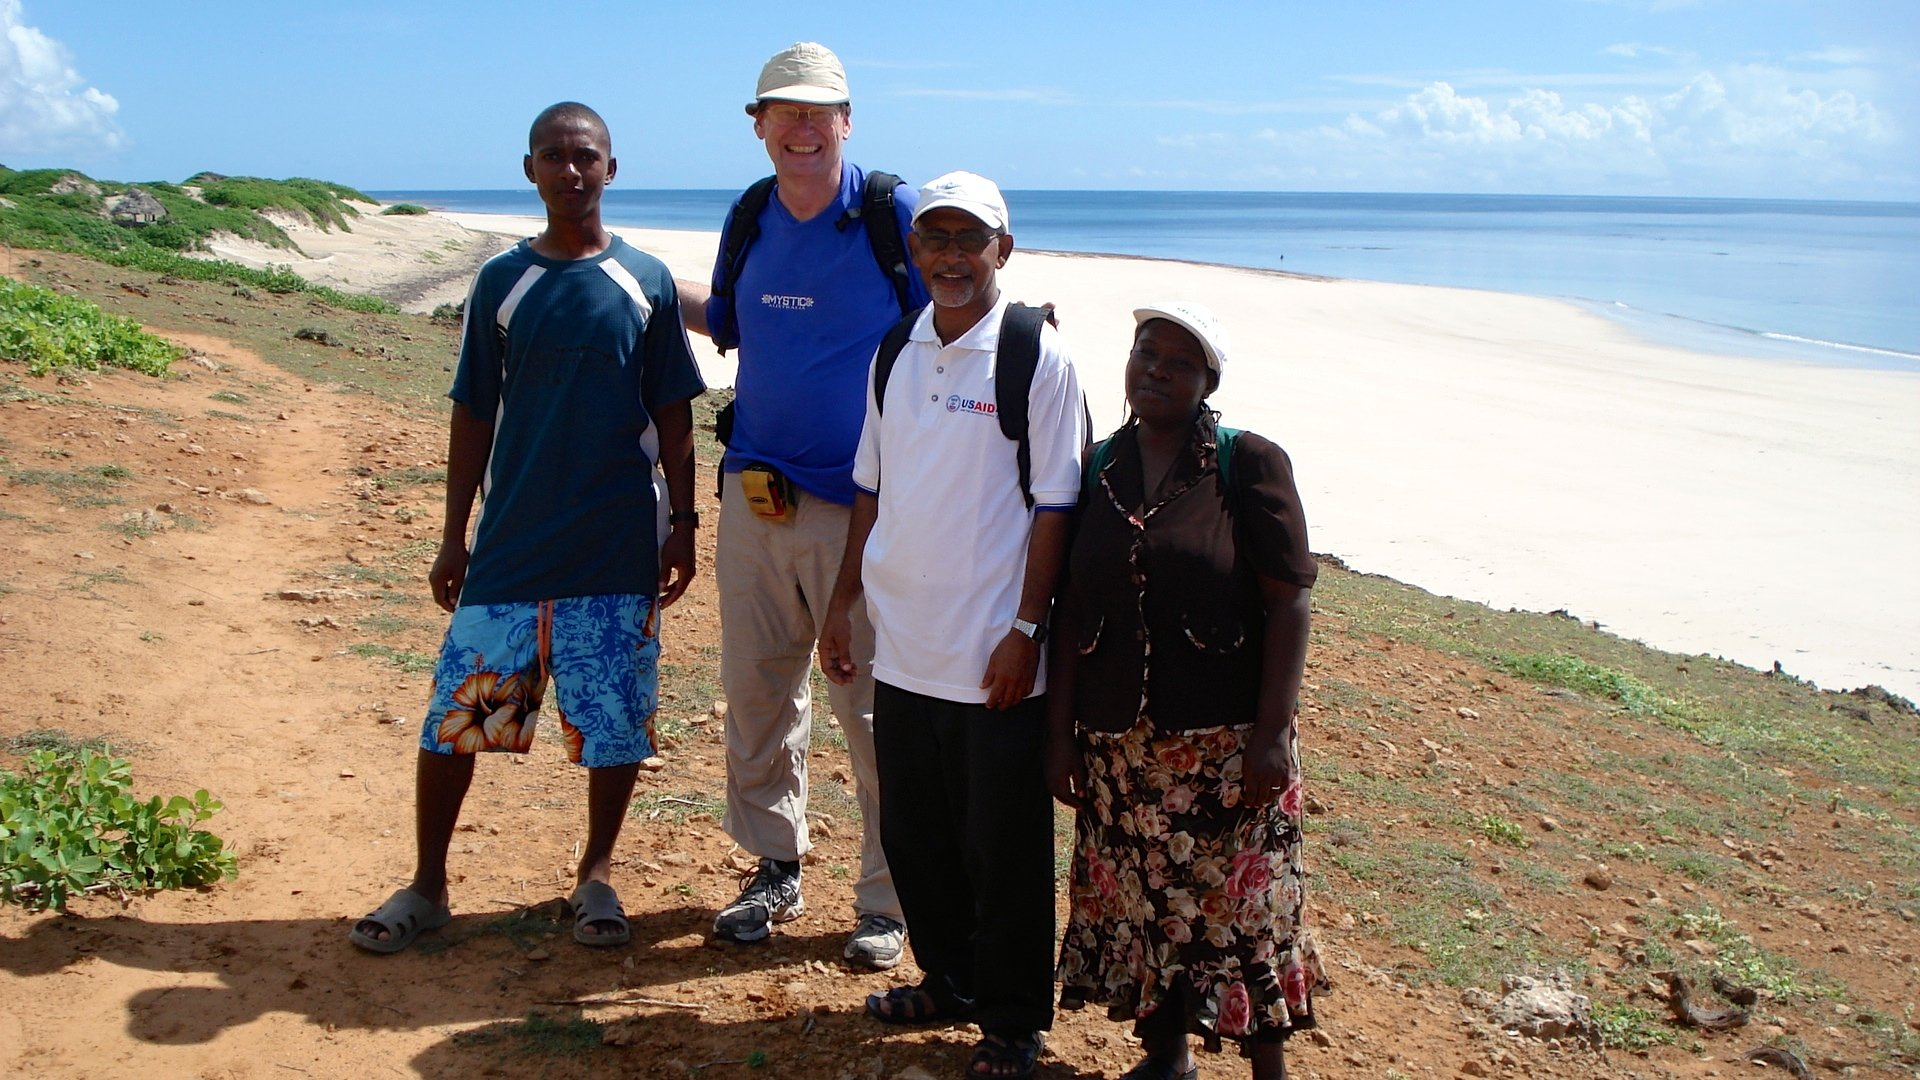 Mark with friends and colleagues on Kiwayu Island in Kenya